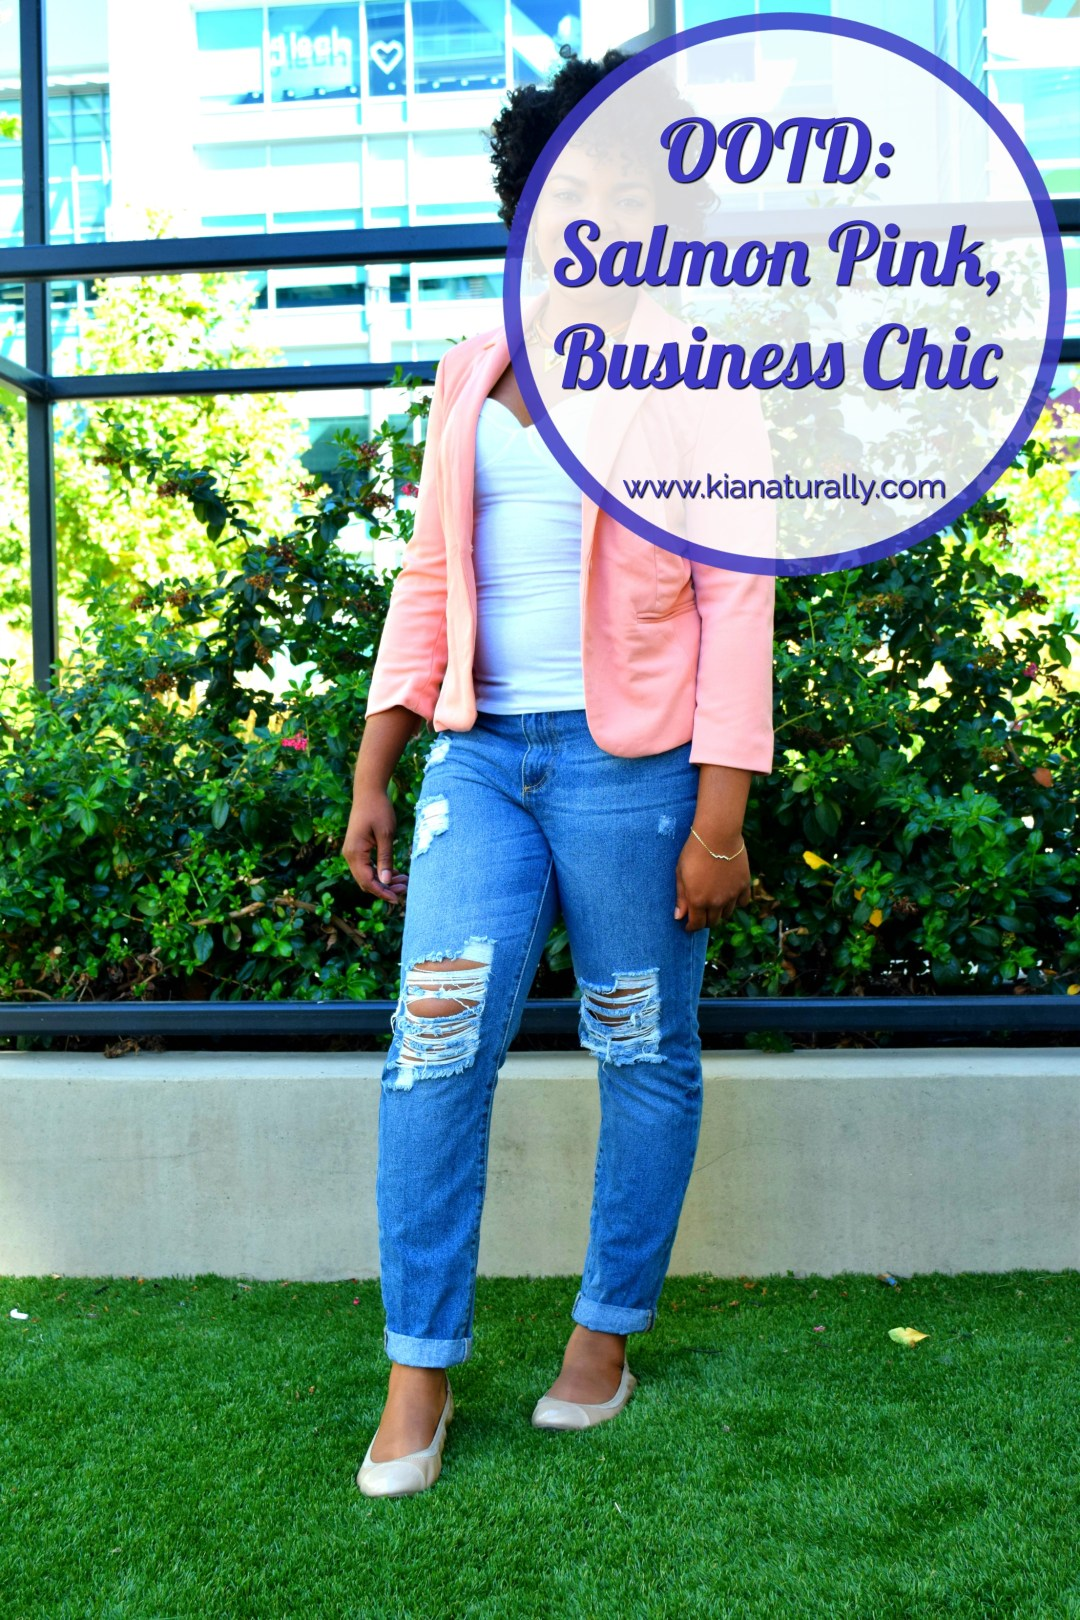 OOTD: Salmon Pink, Business Chic - www.kianaturally.com